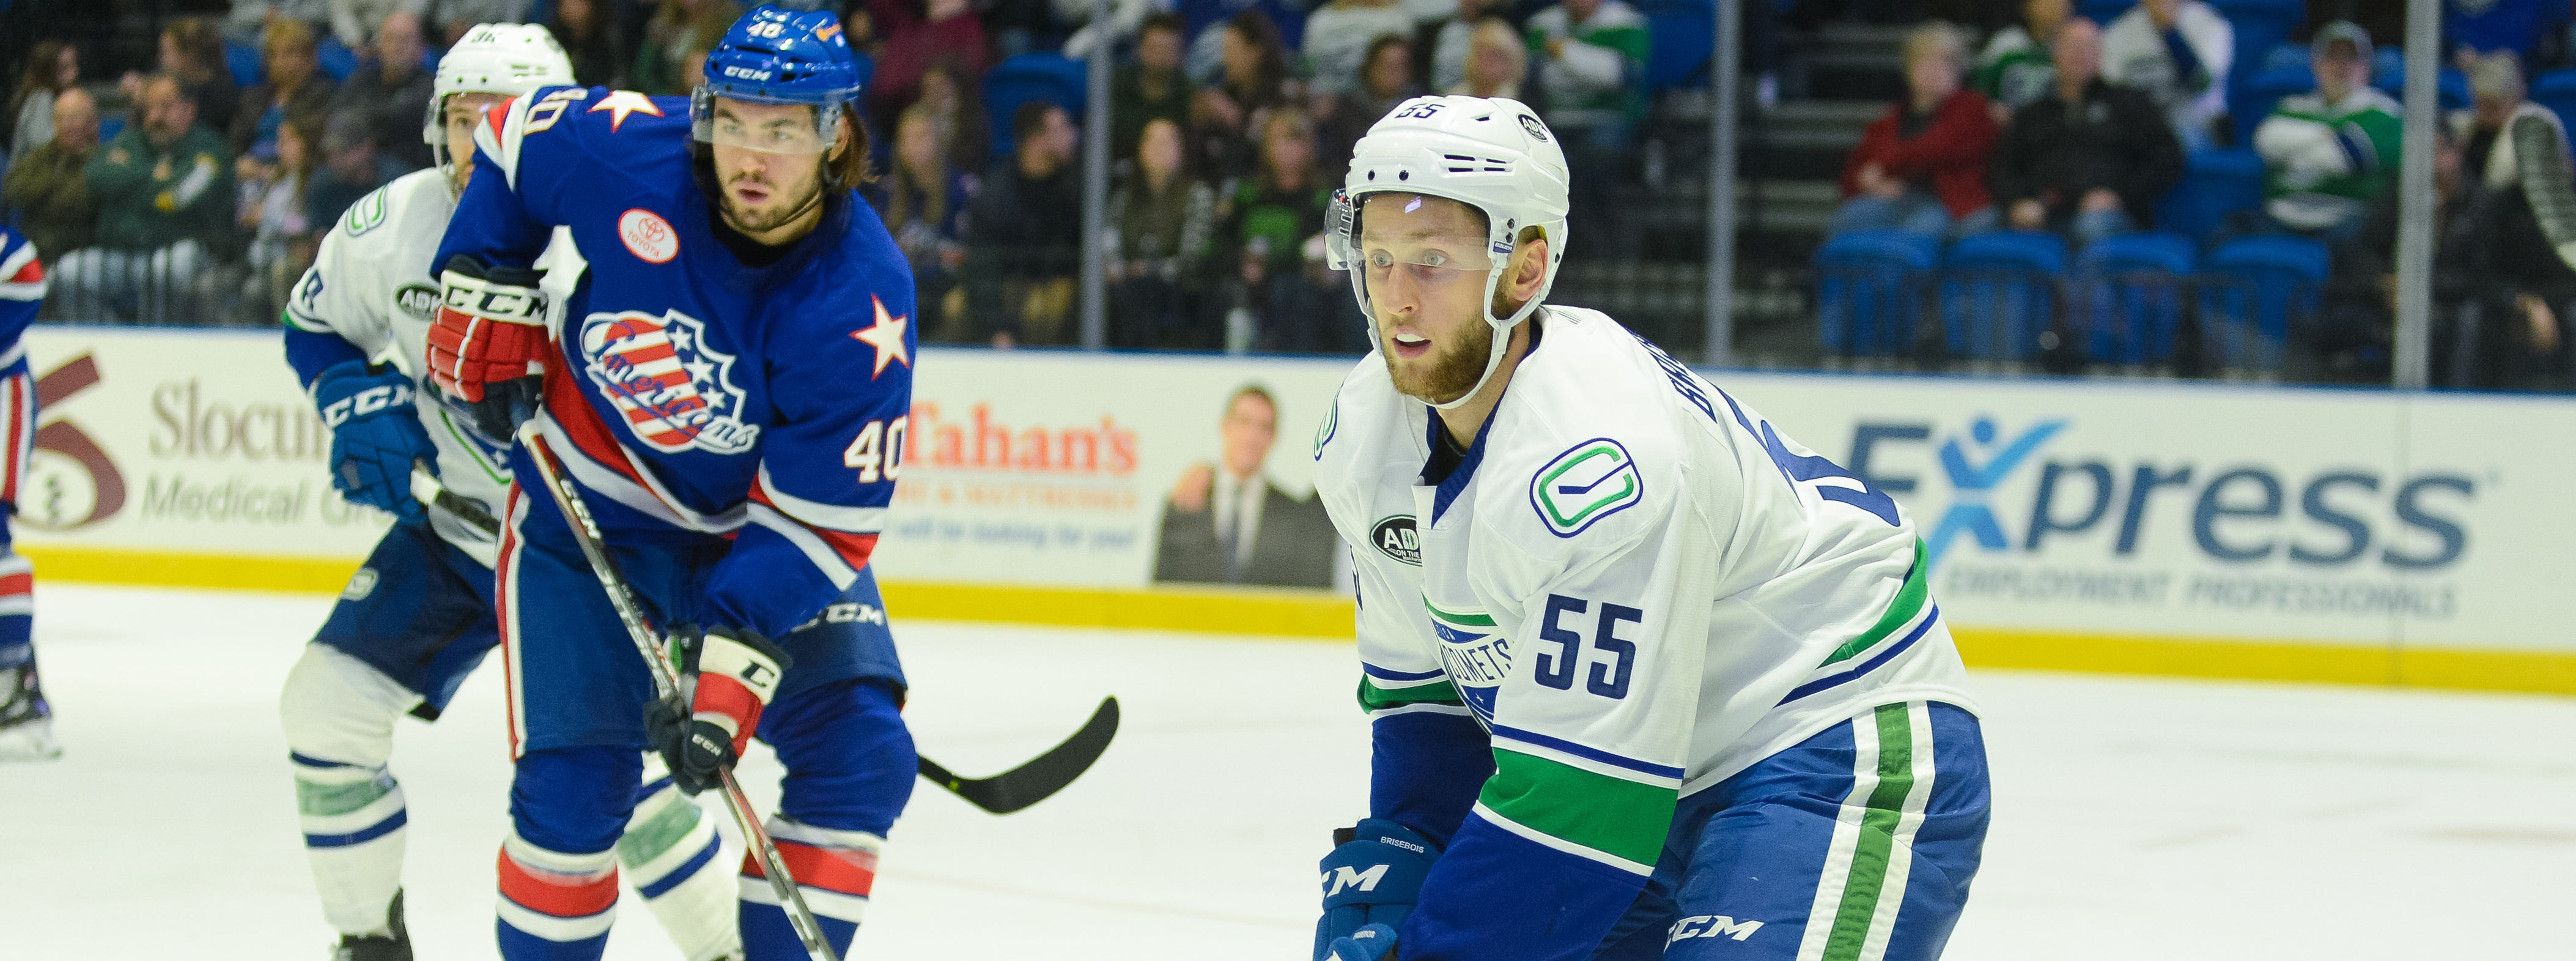 COMETS LOOK TO BOUNCE BACK AGAINST AMERKS